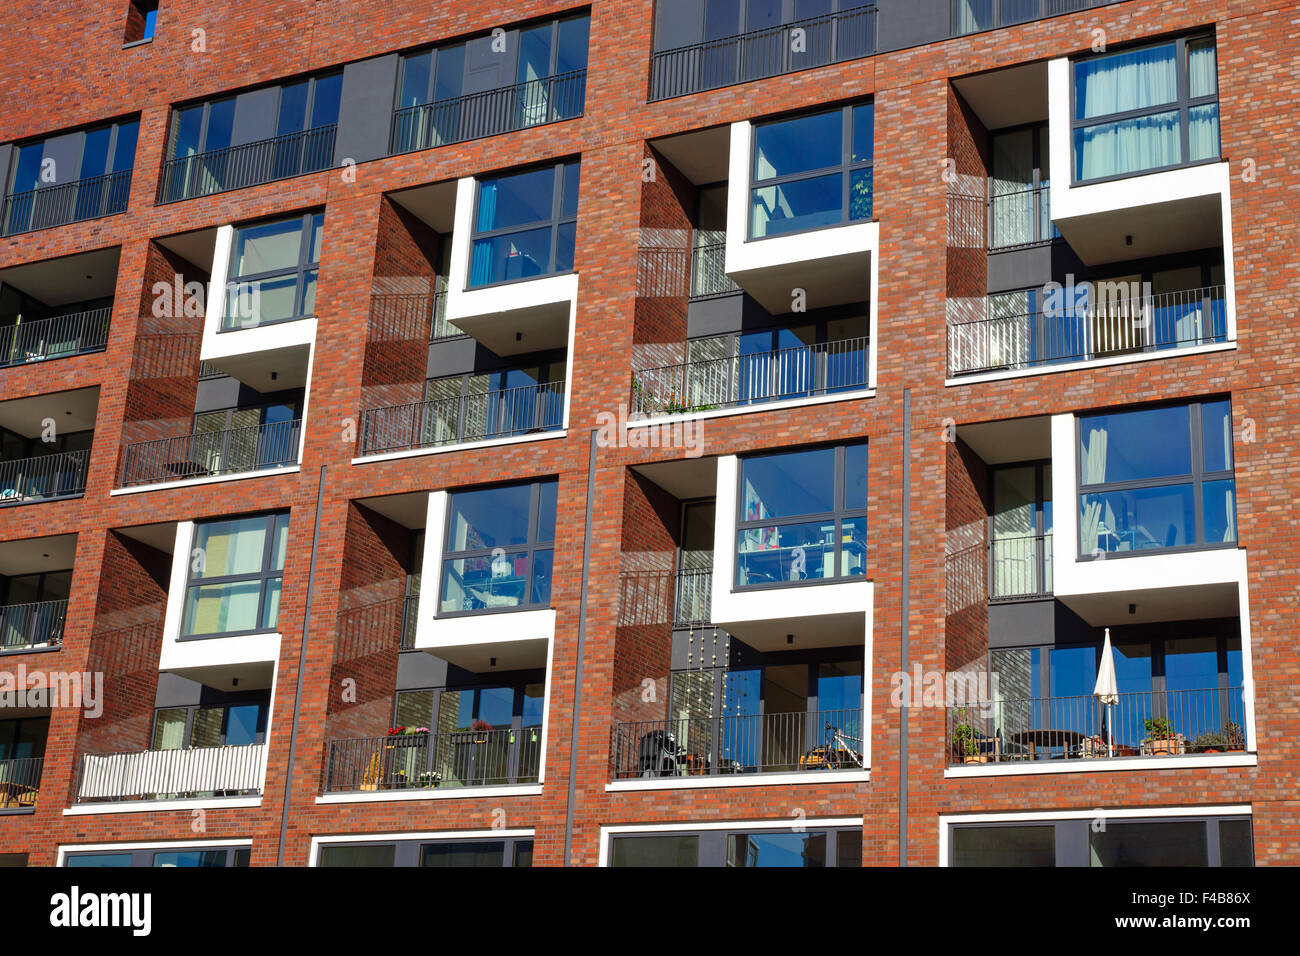 Facade of an apartment building Stock Photo